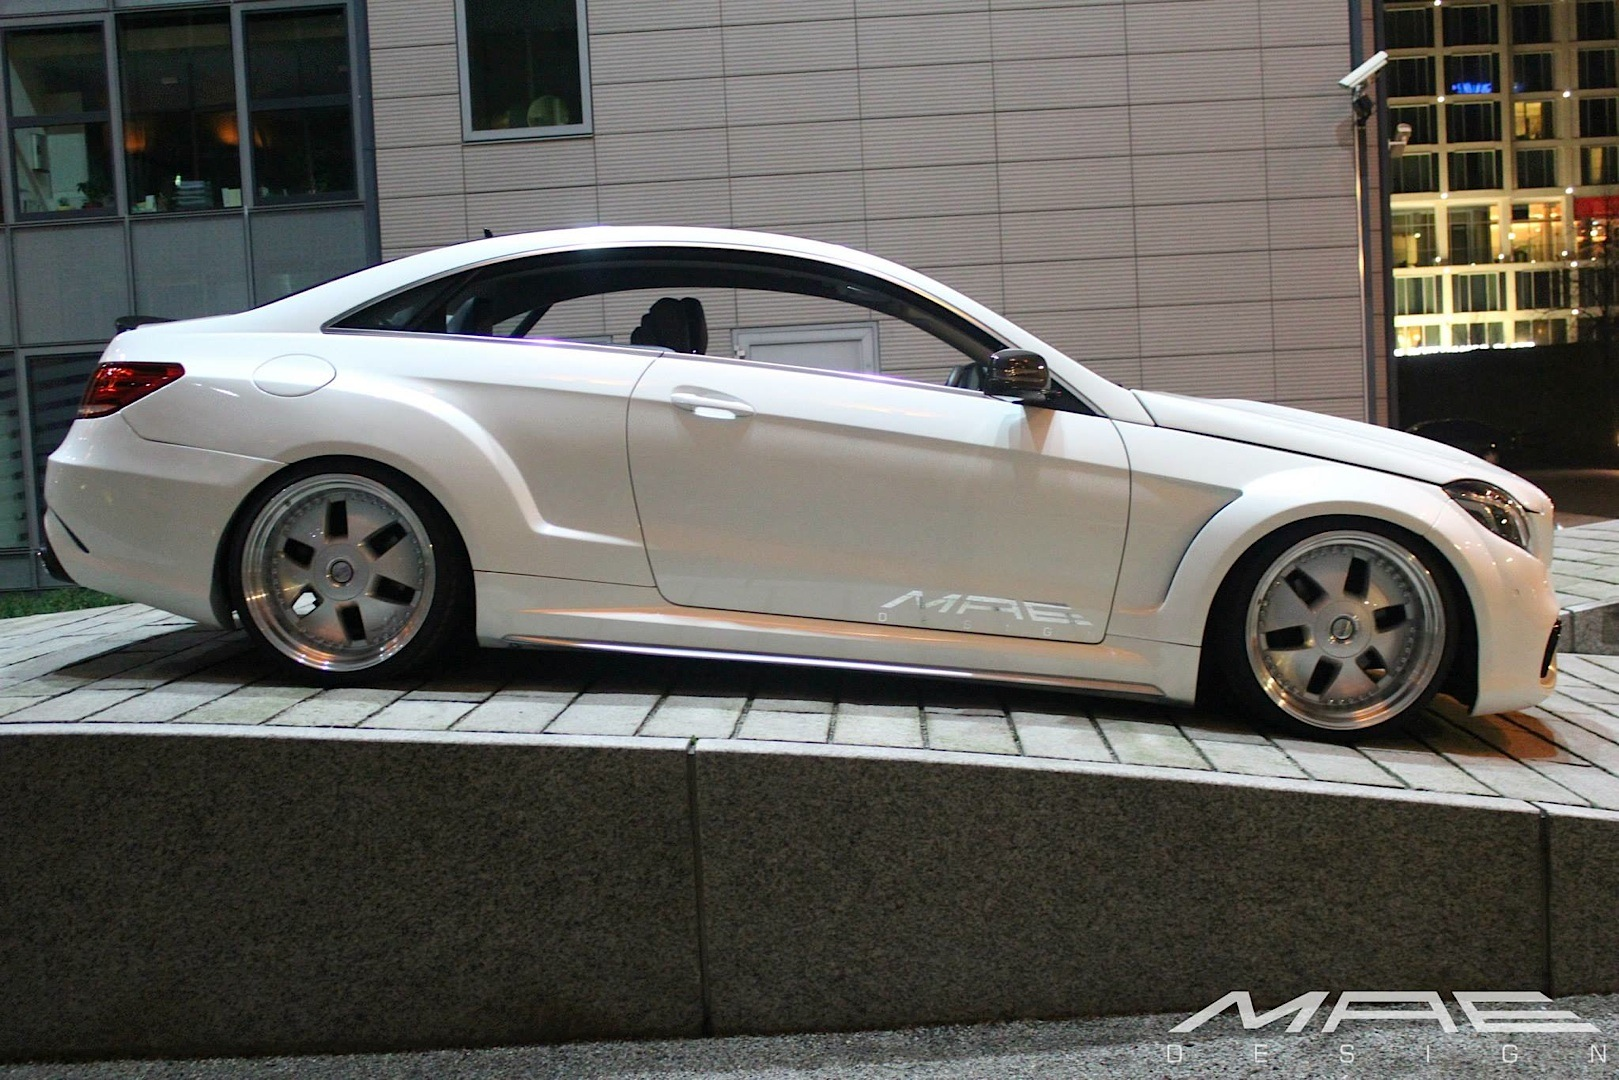 E-Class Coupe Wide Bodykit by MAE is as Clean as a Whistle